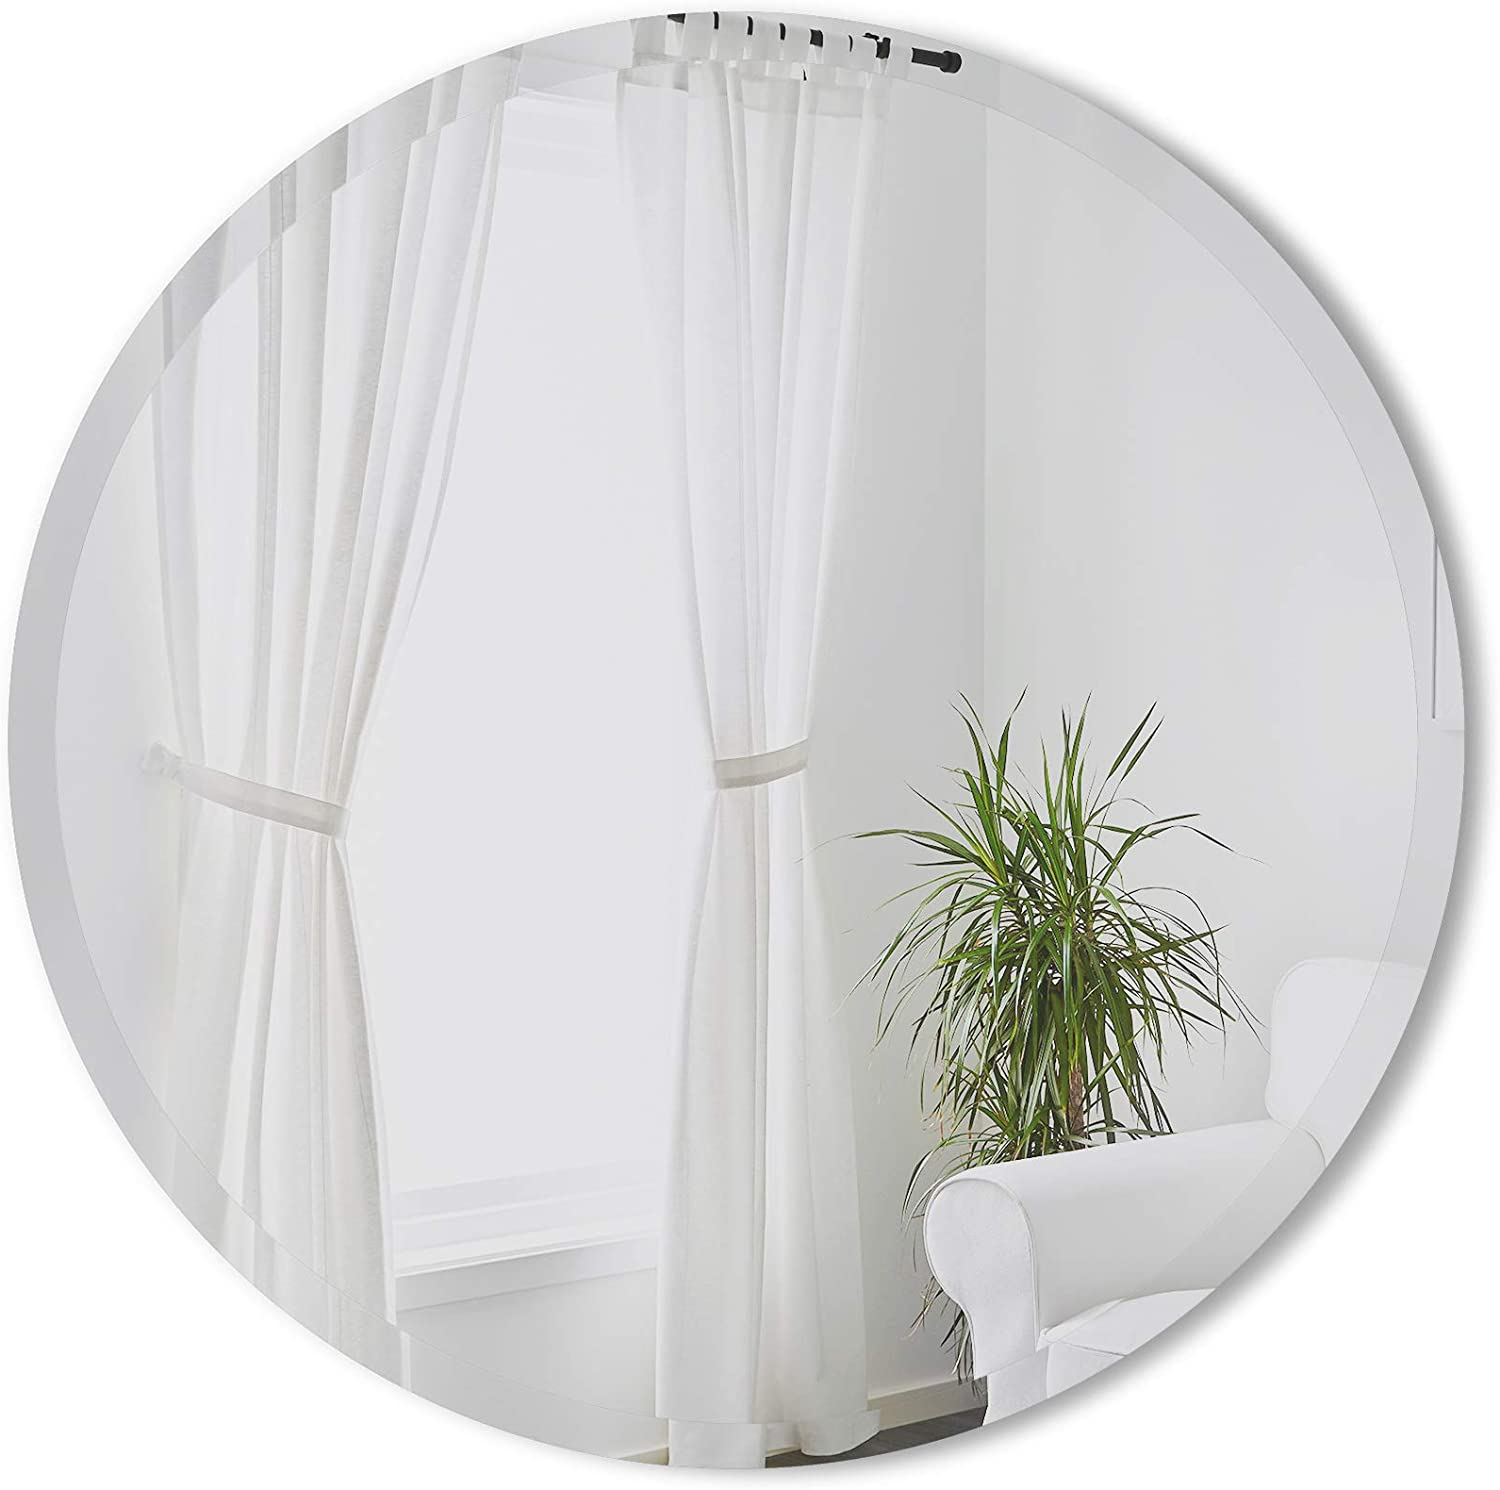 Umbra Hub Free shipping on posting reviews Bevy Round Circular Max 53% OFF Wall for Entryways Mirror Living